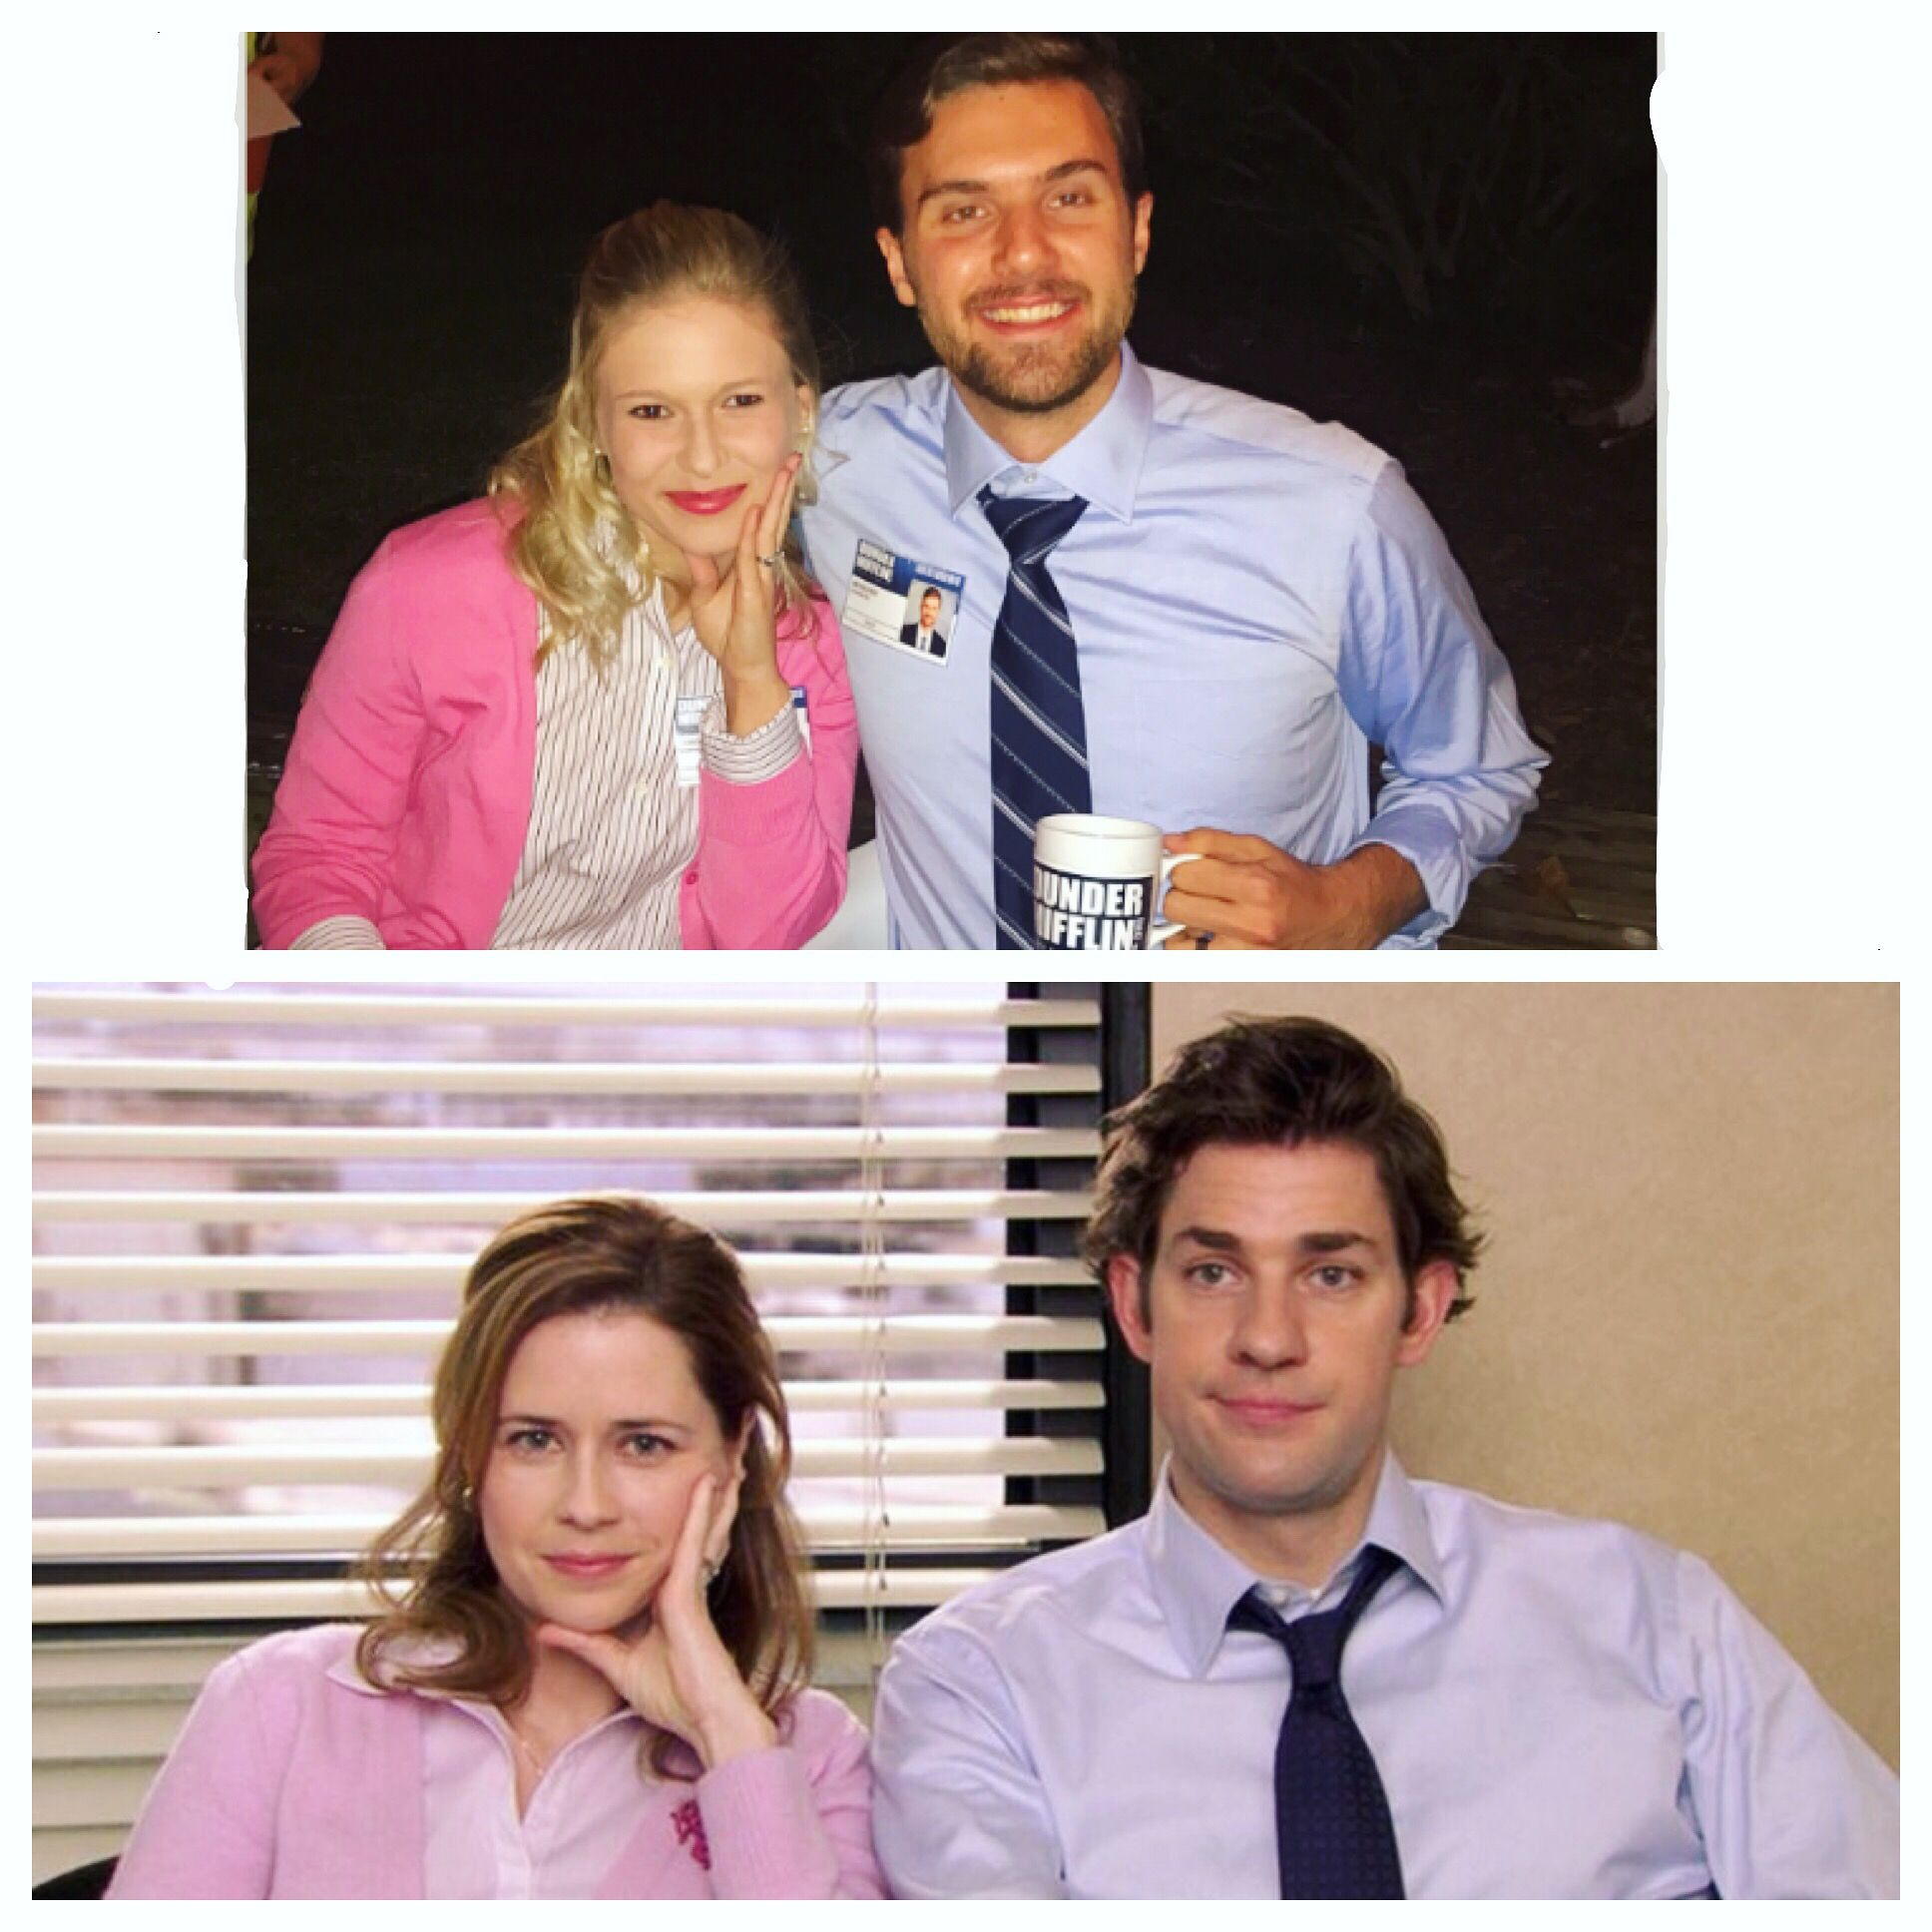 the office jim and pam costume halloween dress up couple   diy